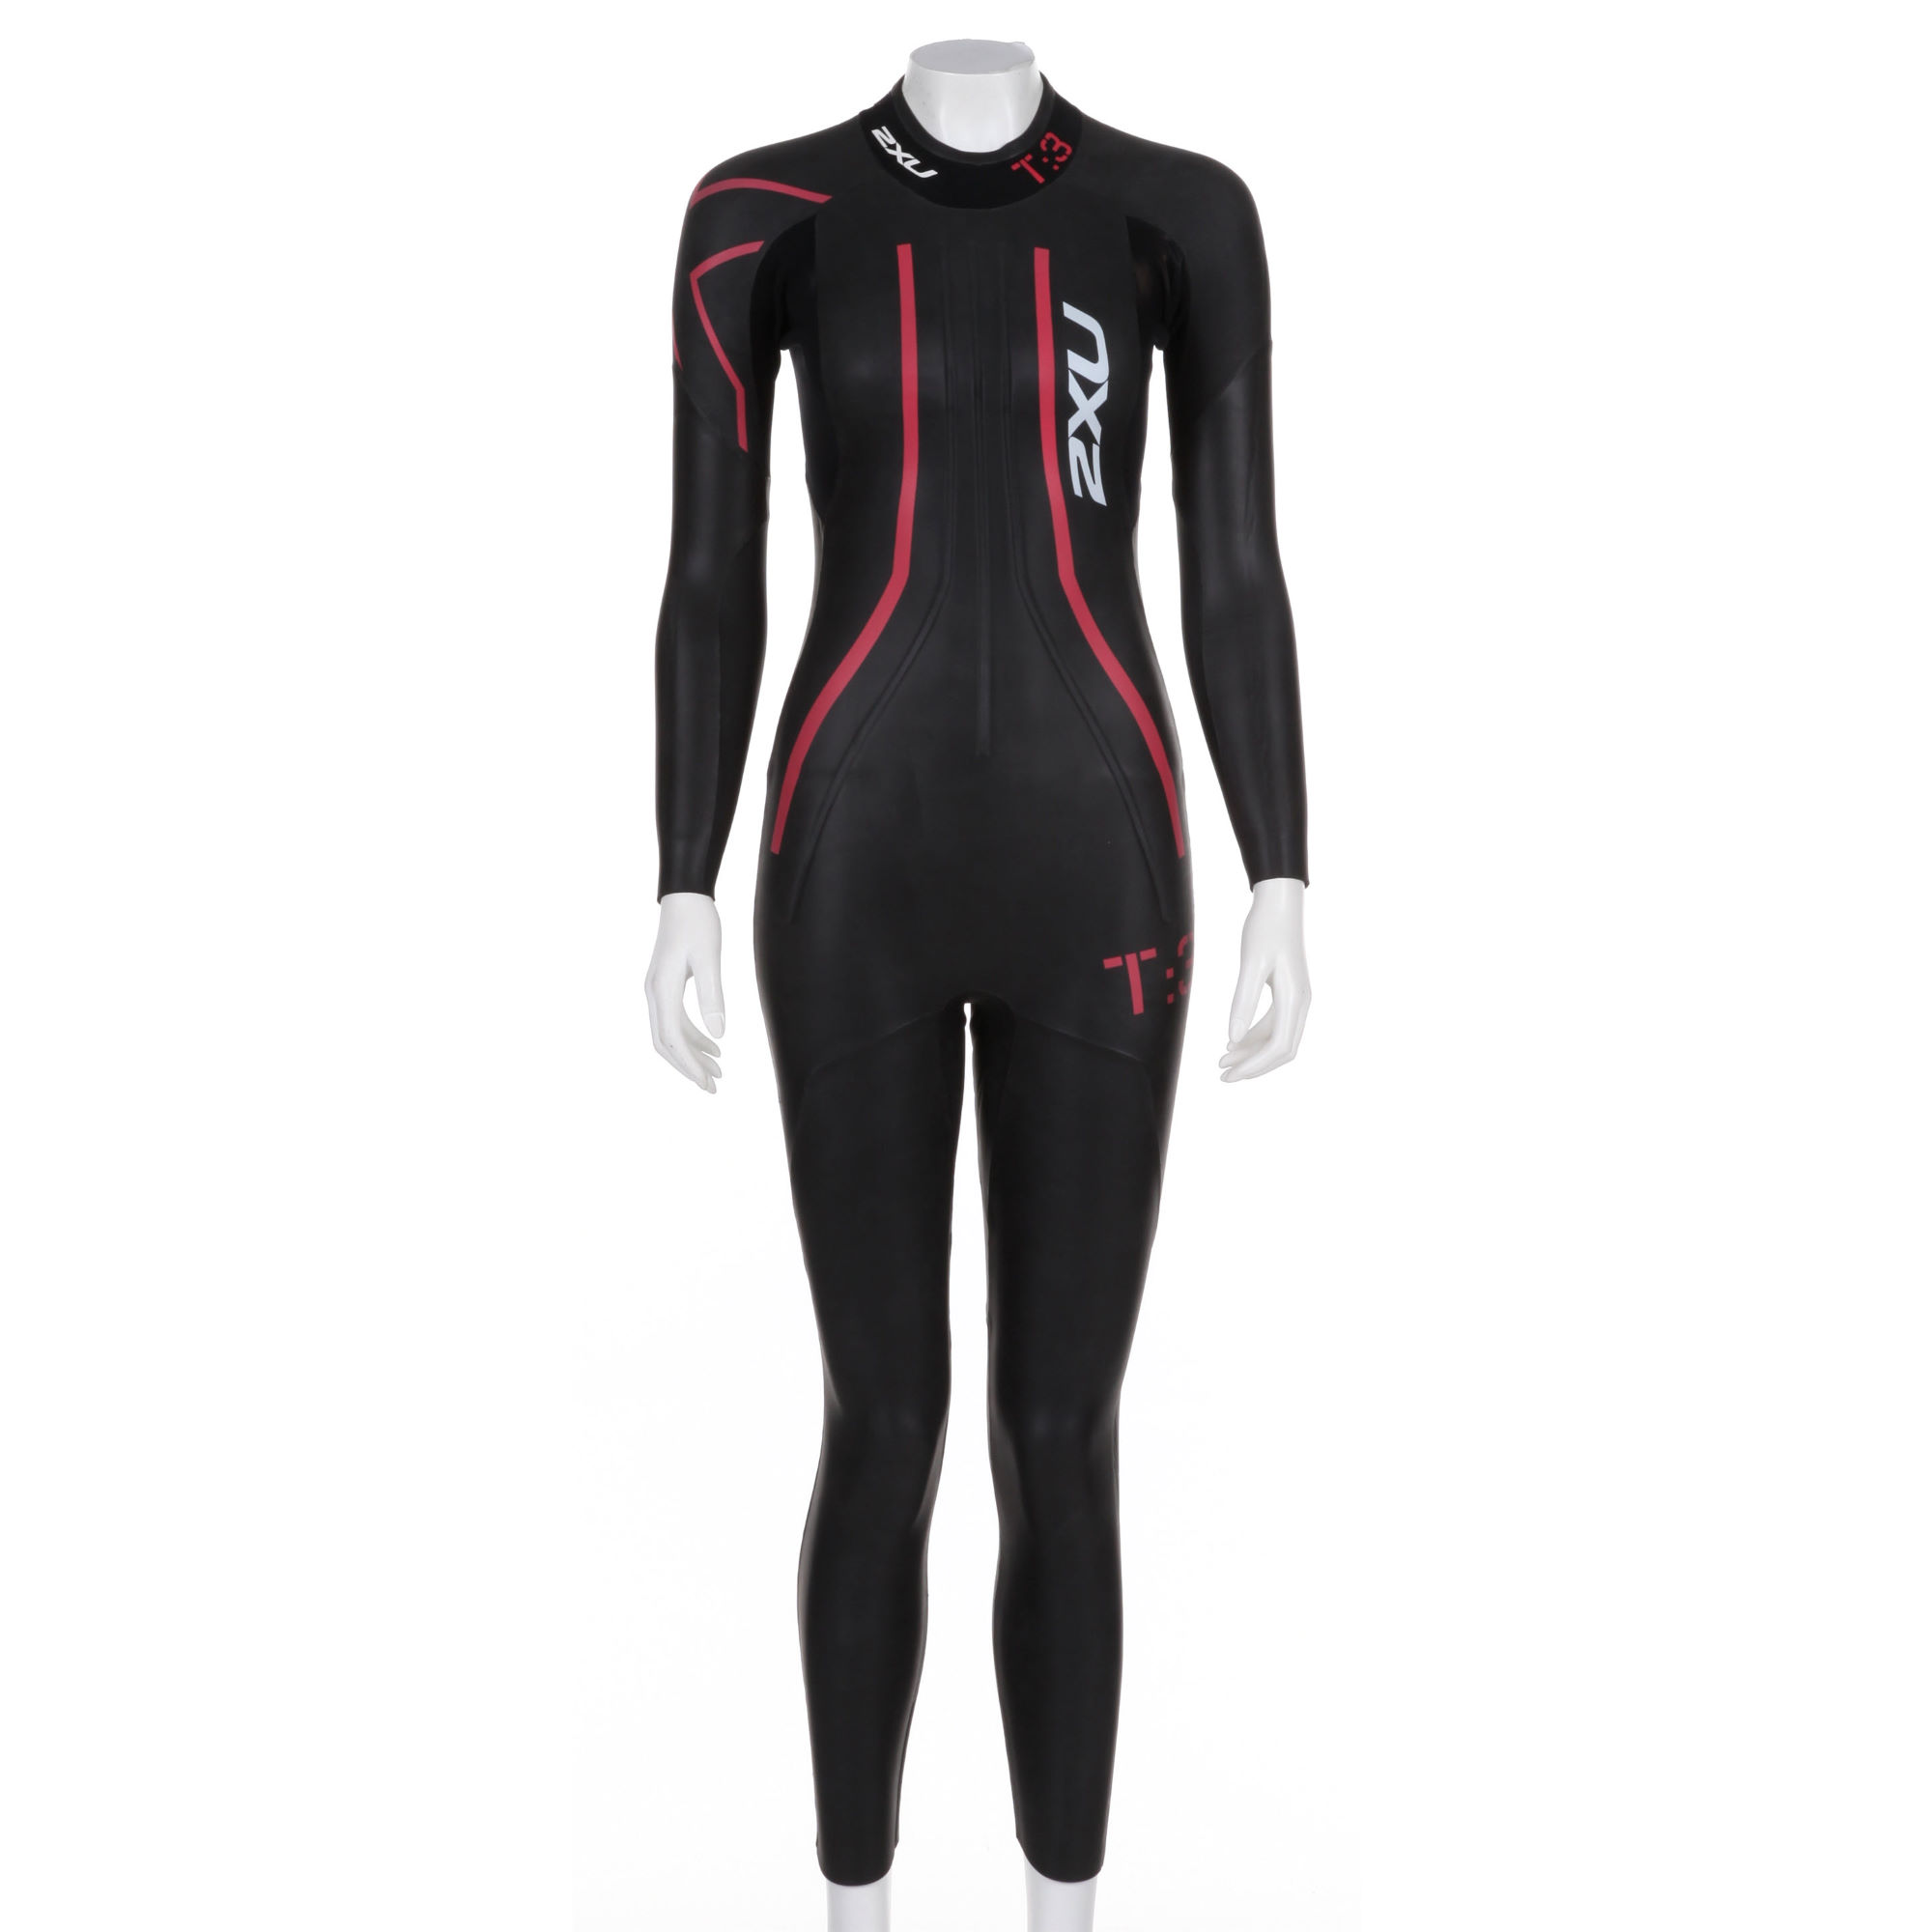 combinaisons de triathlon 2xu ladies t 3 team wetsuit. Black Bedroom Furniture Sets. Home Design Ideas